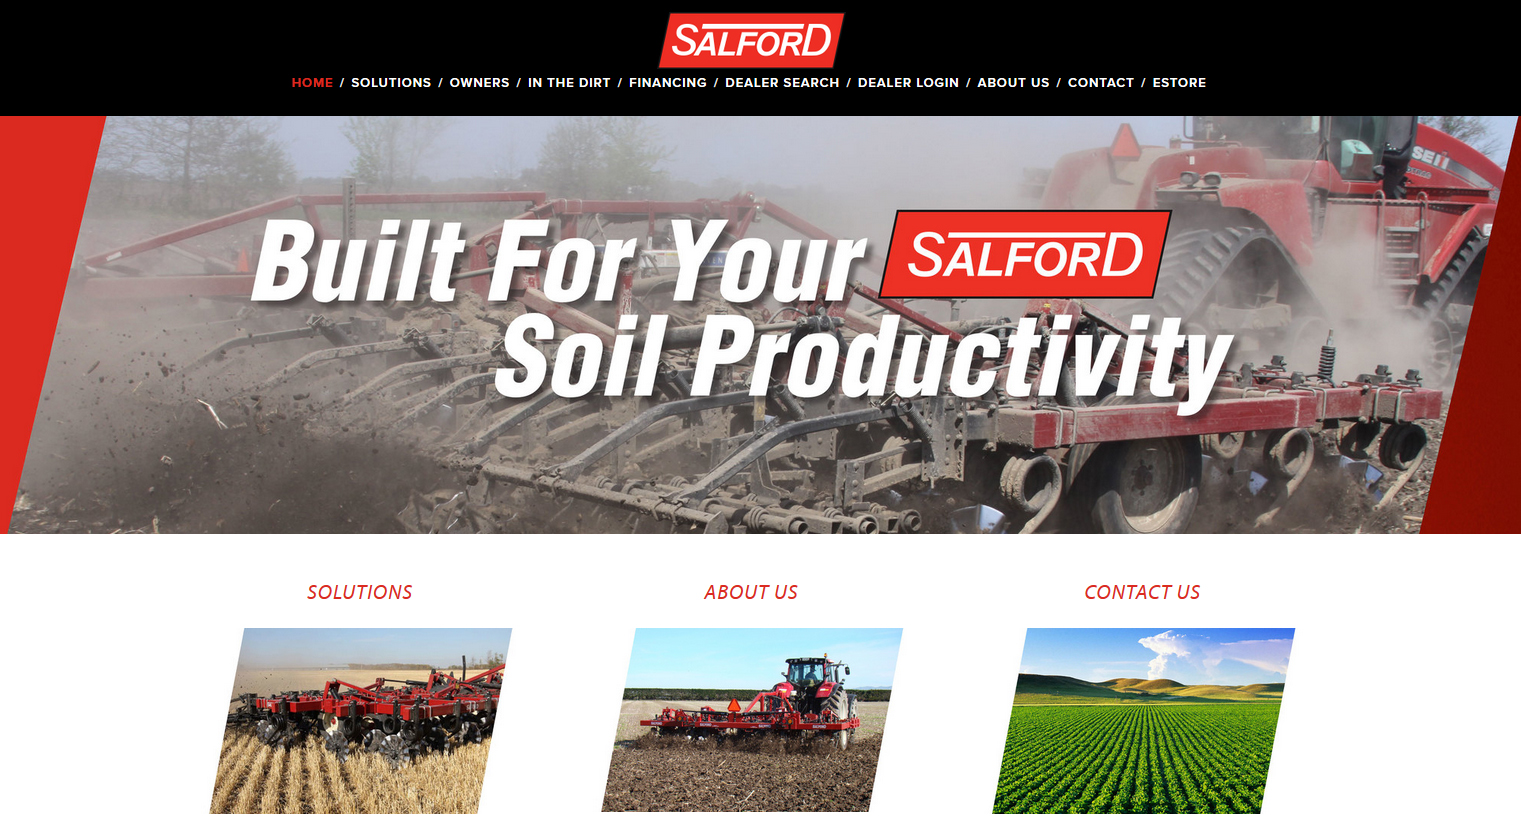 Salford group home page